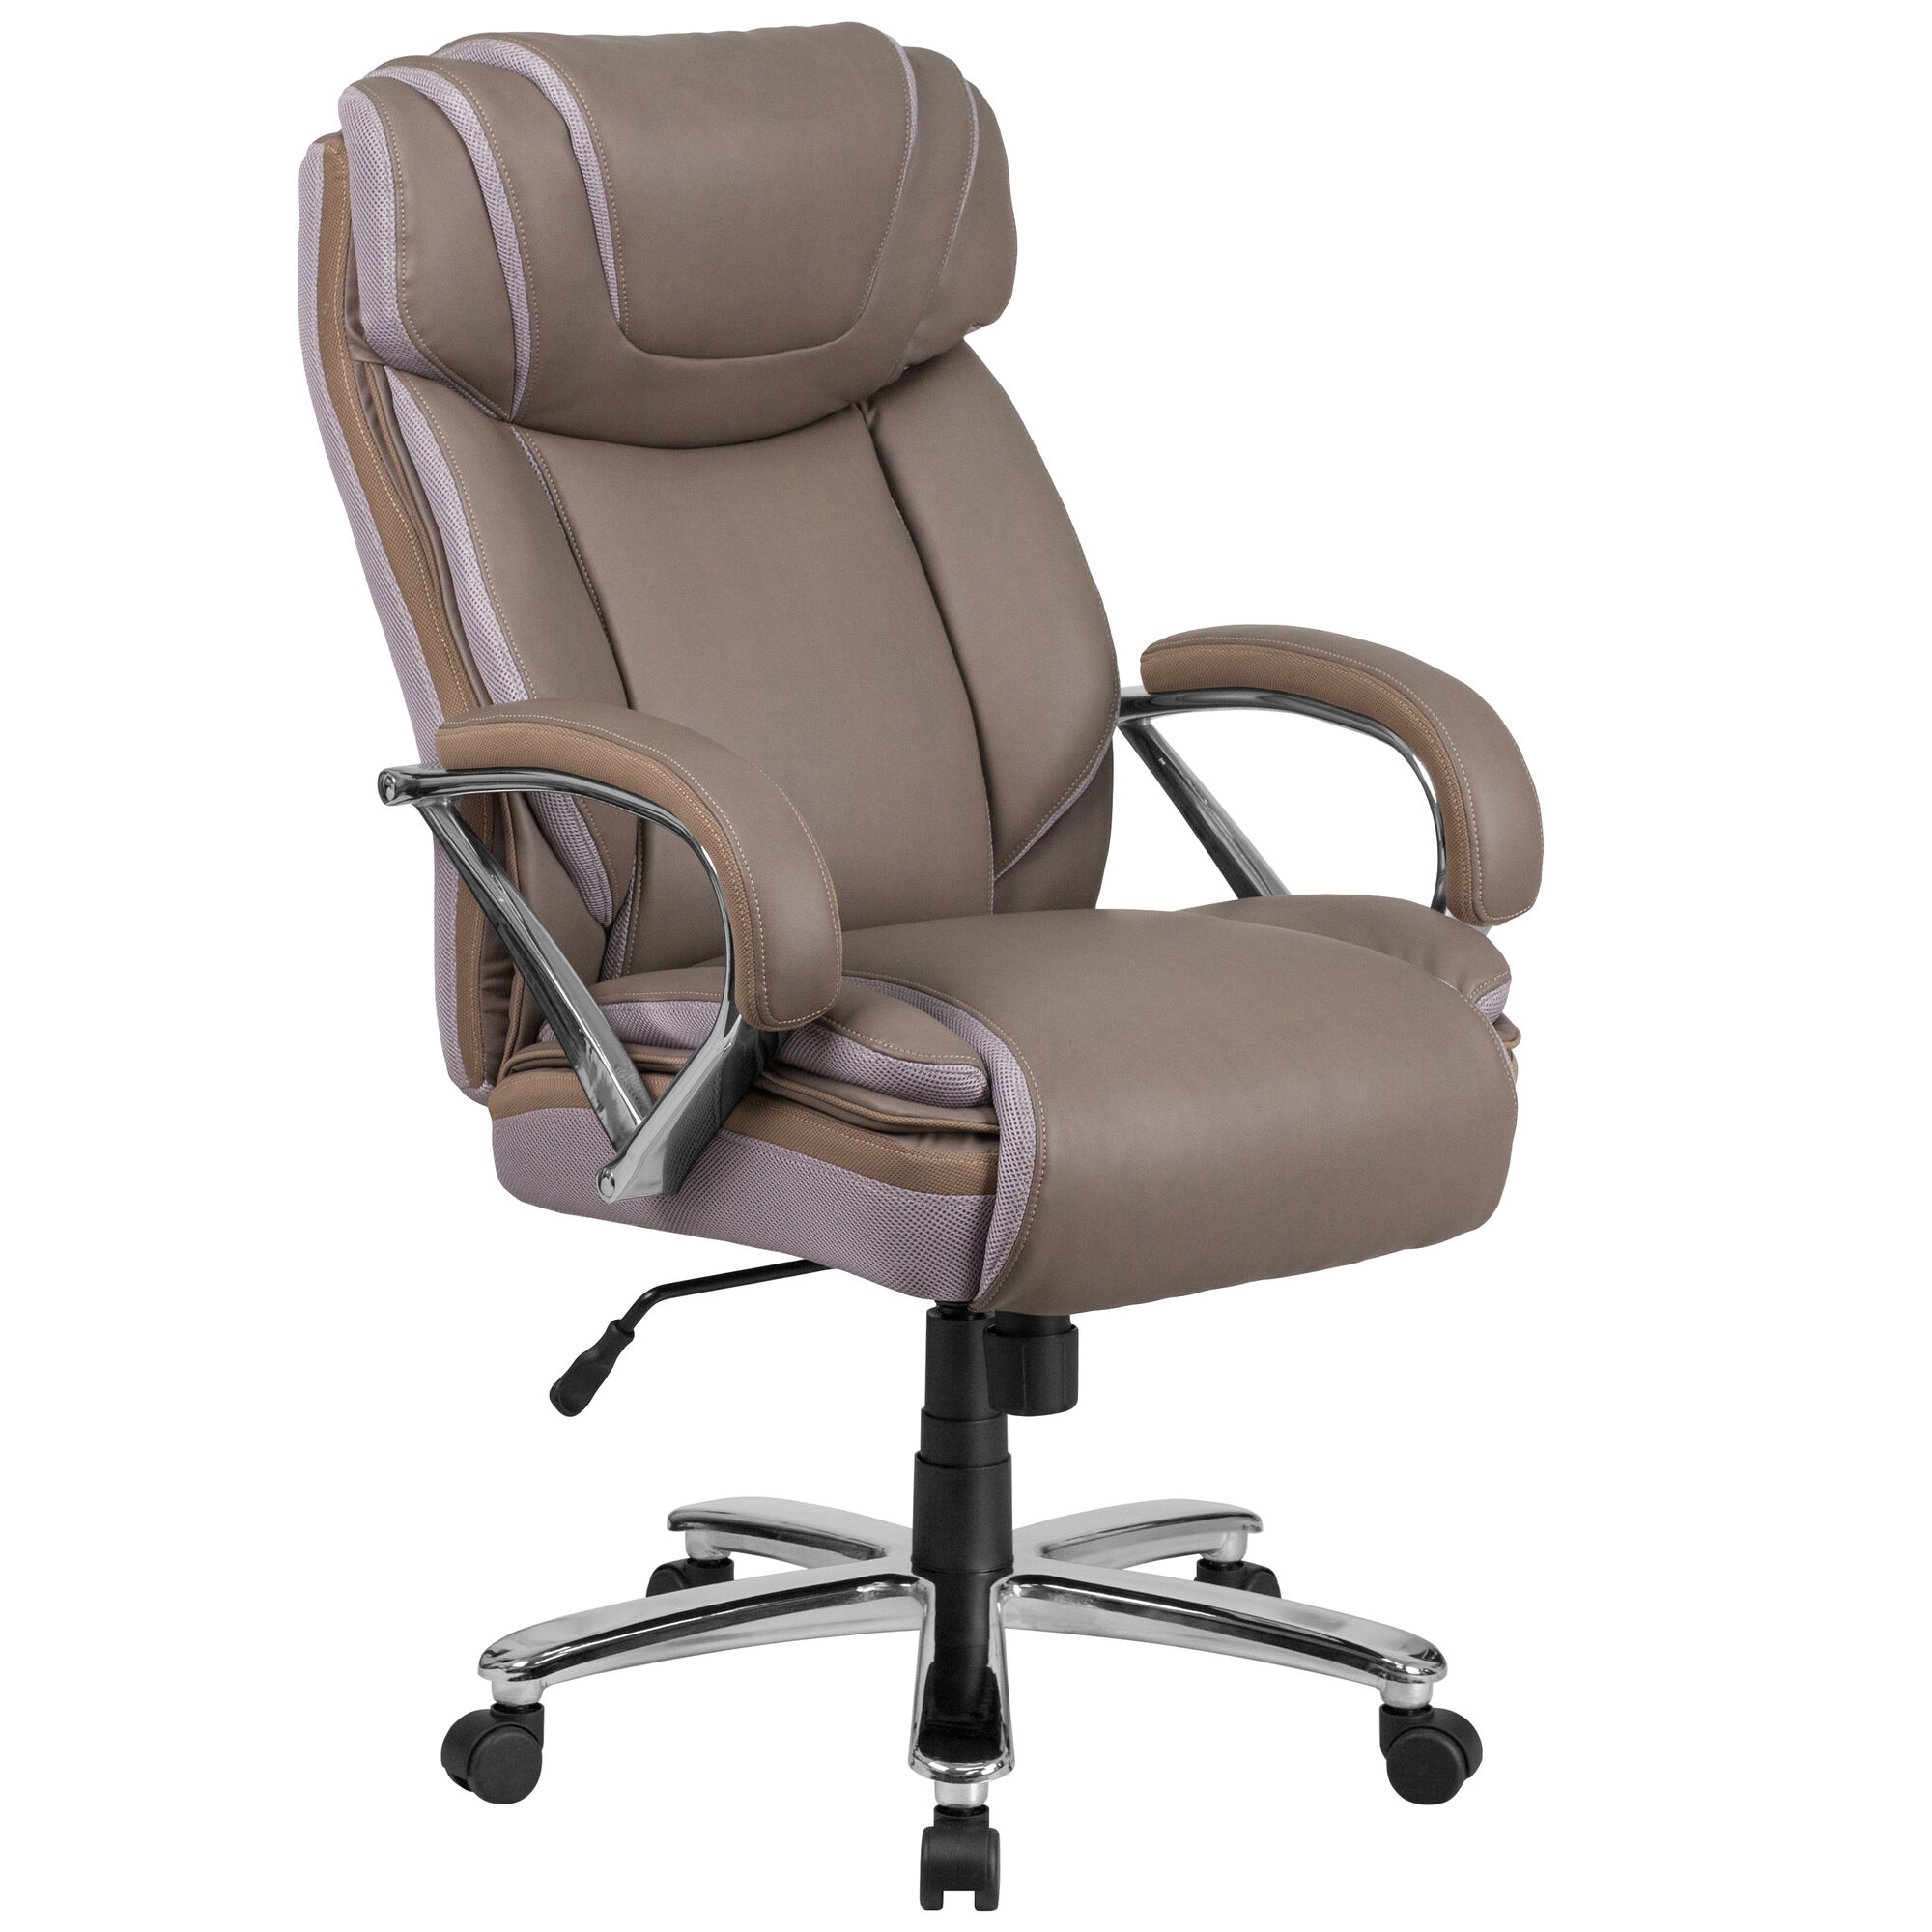 Stupendous Hercules Series Big Tall 500 Lb Rated Taupe Leather Executive Swivel Ergonomic Office Chair With Extra Wide Seat Spiritservingveterans Wood Chair Design Ideas Spiritservingveteransorg